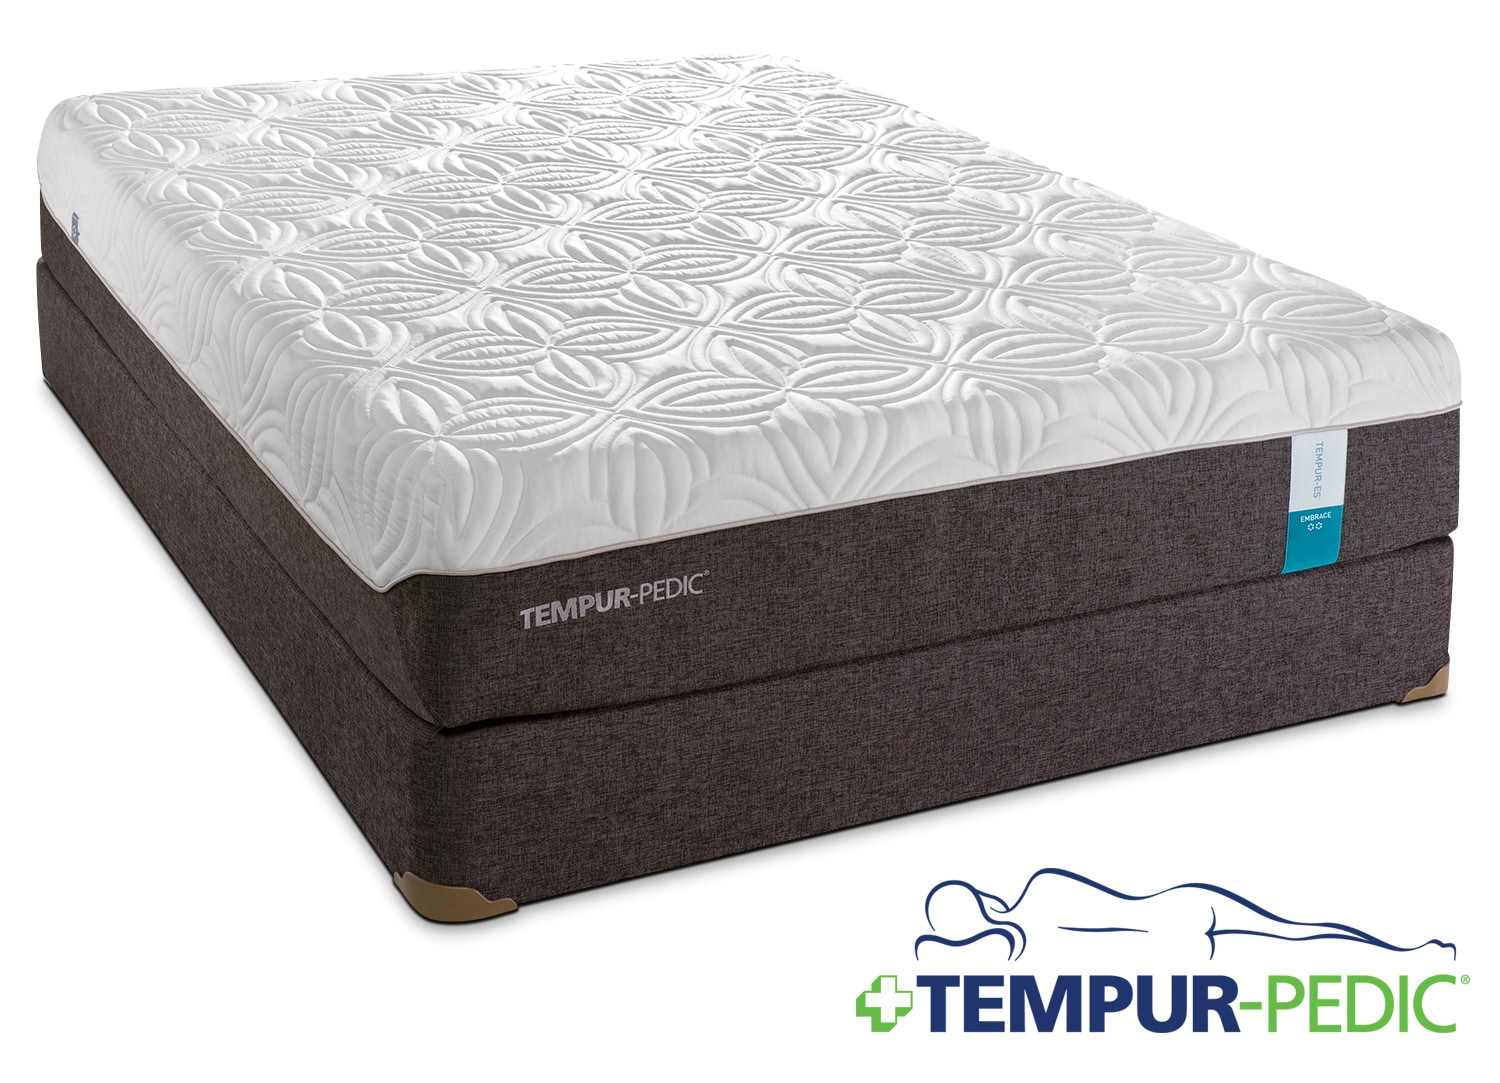 Mattresses and Bedding - Tempur-Pedic Embrace Twin XL Mattress and Boxspring Set